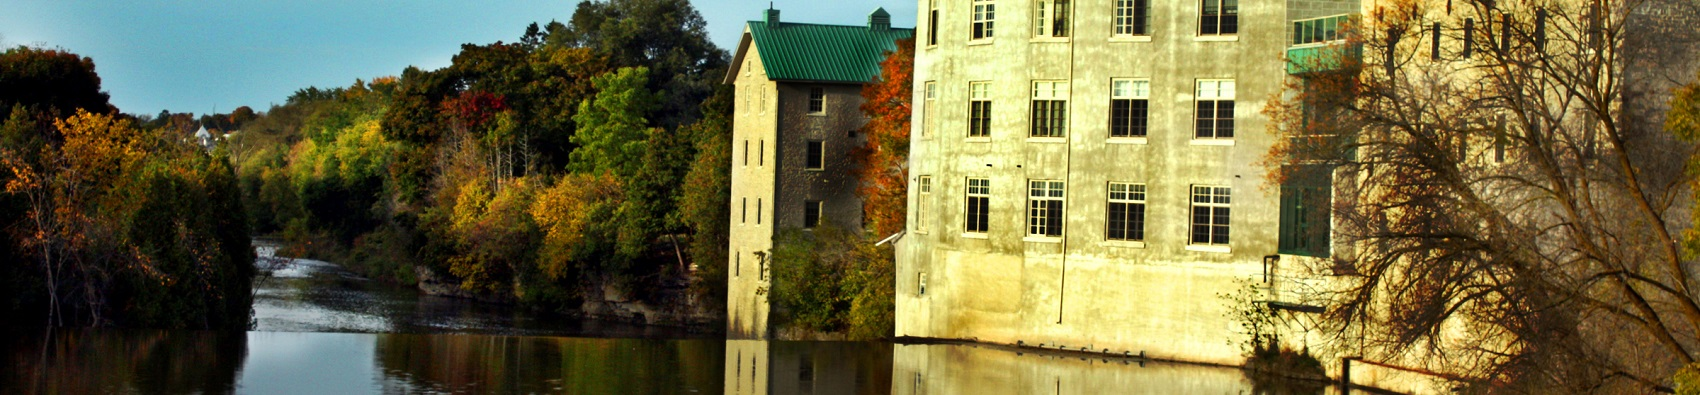 Scenic Fergus condos on water